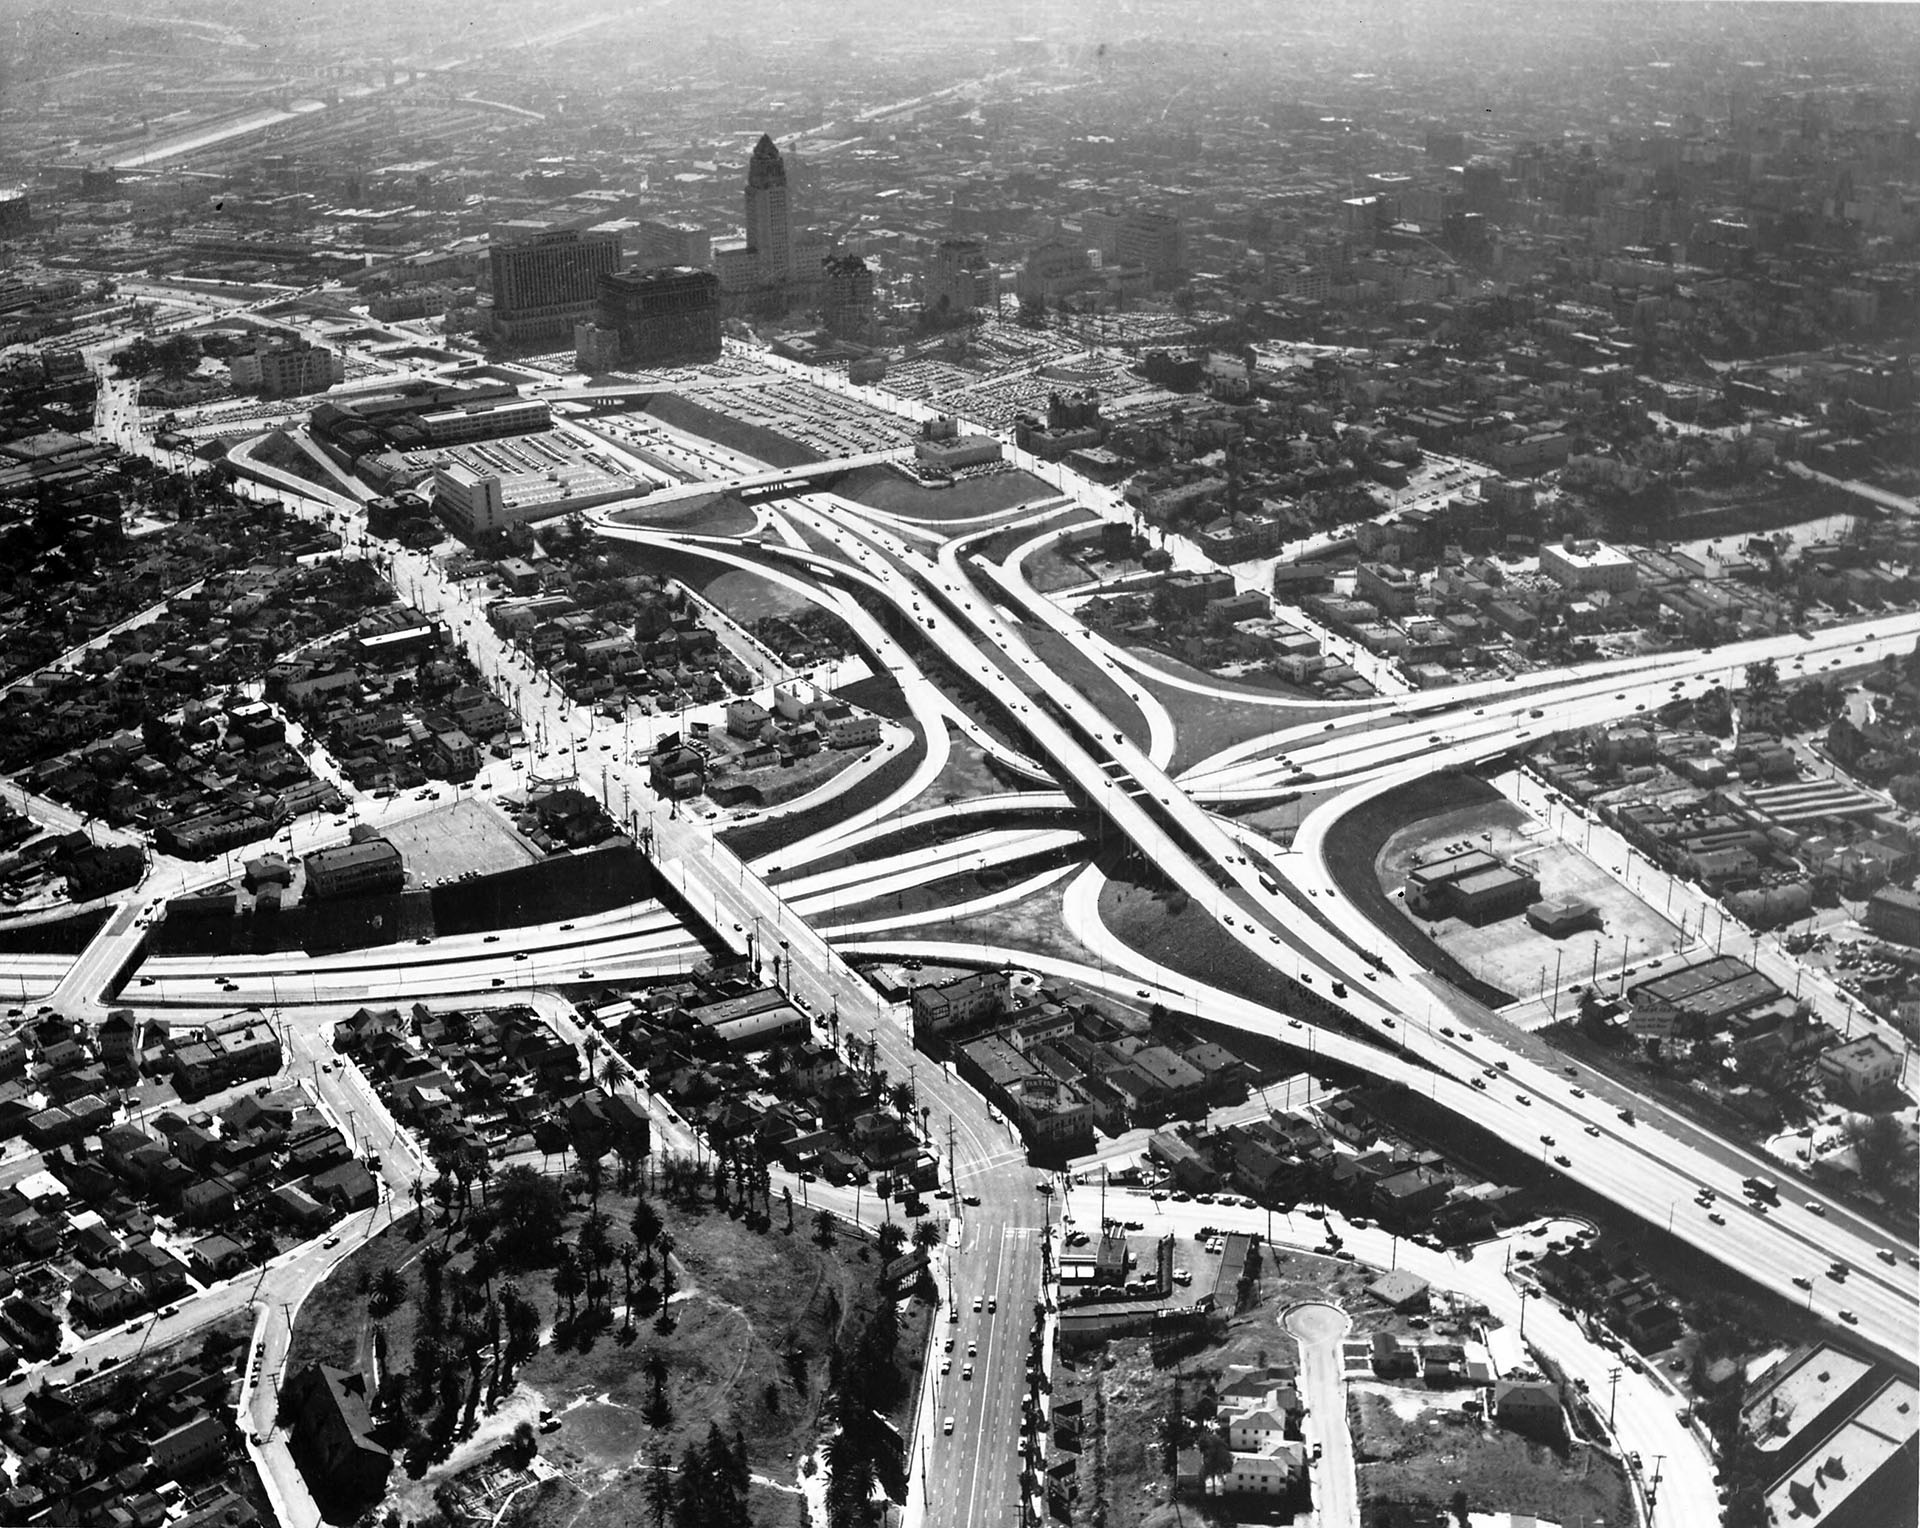 Aerial view of downtown Los Angeles from the Harbor Freeway and Hollywood Freeway interchange, 1954